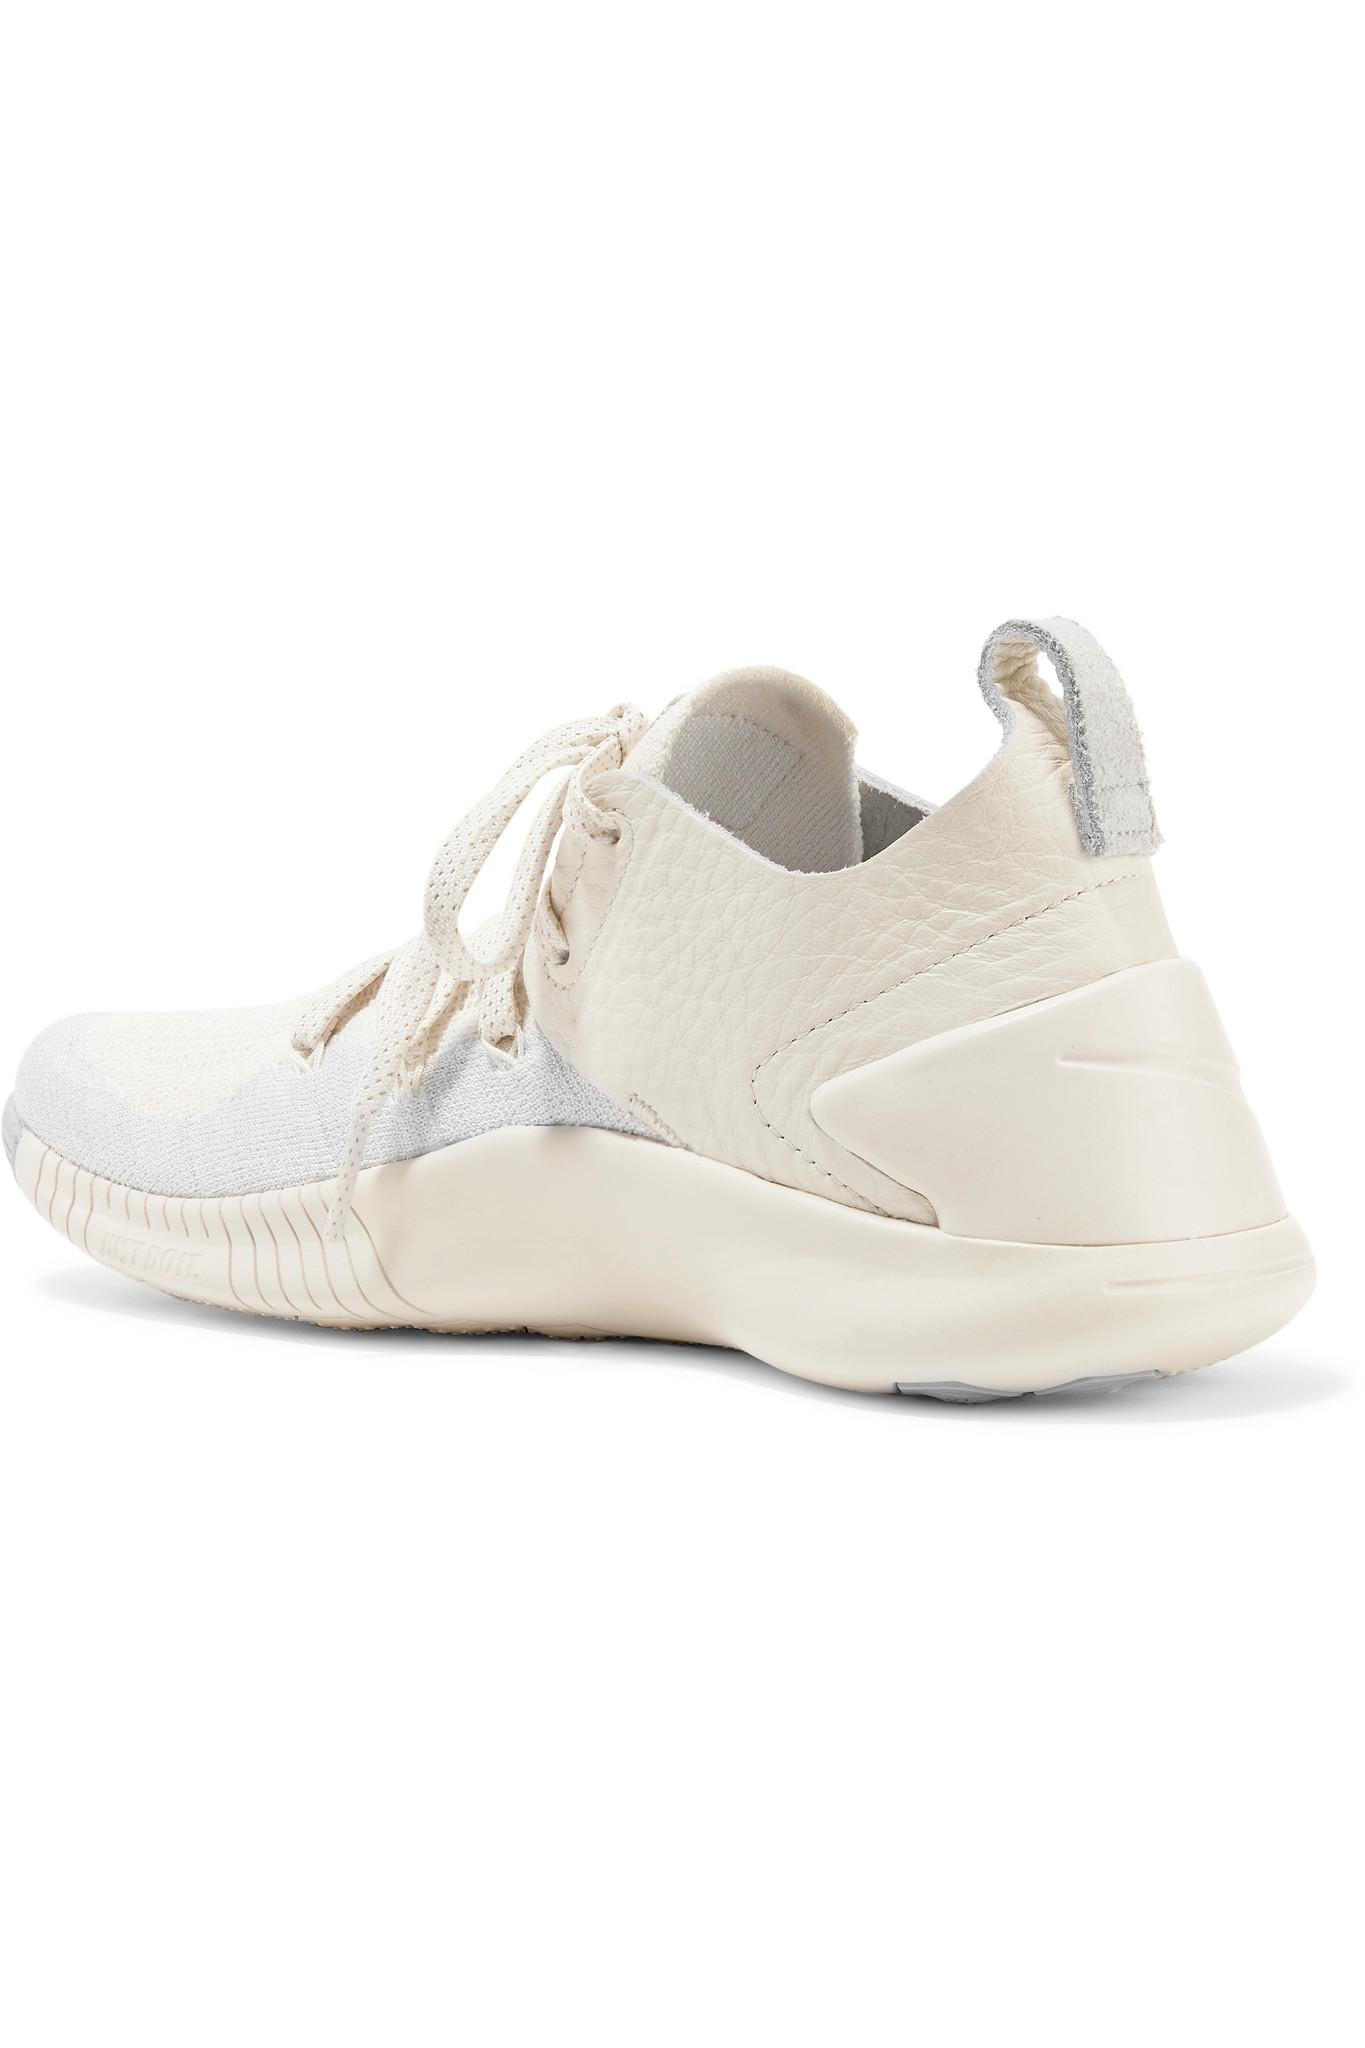 97e9613eee305 Lyst - Nike Free Tr 3 Champagne Crinkled Leather-trimmed Flyknit Sneakers